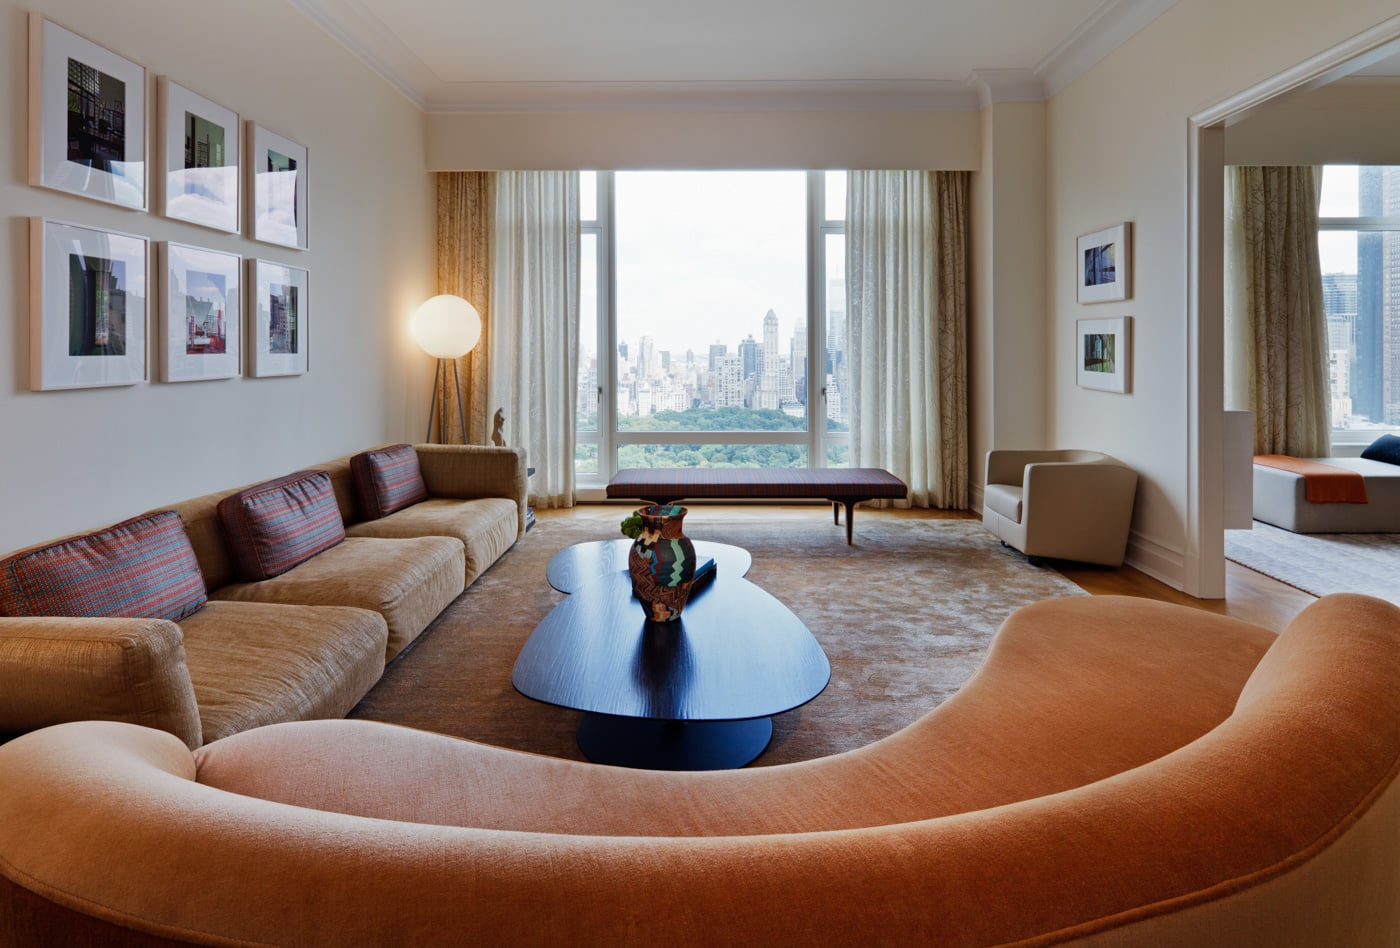 15 Central Park West - project by Reddymade Architecture & Design